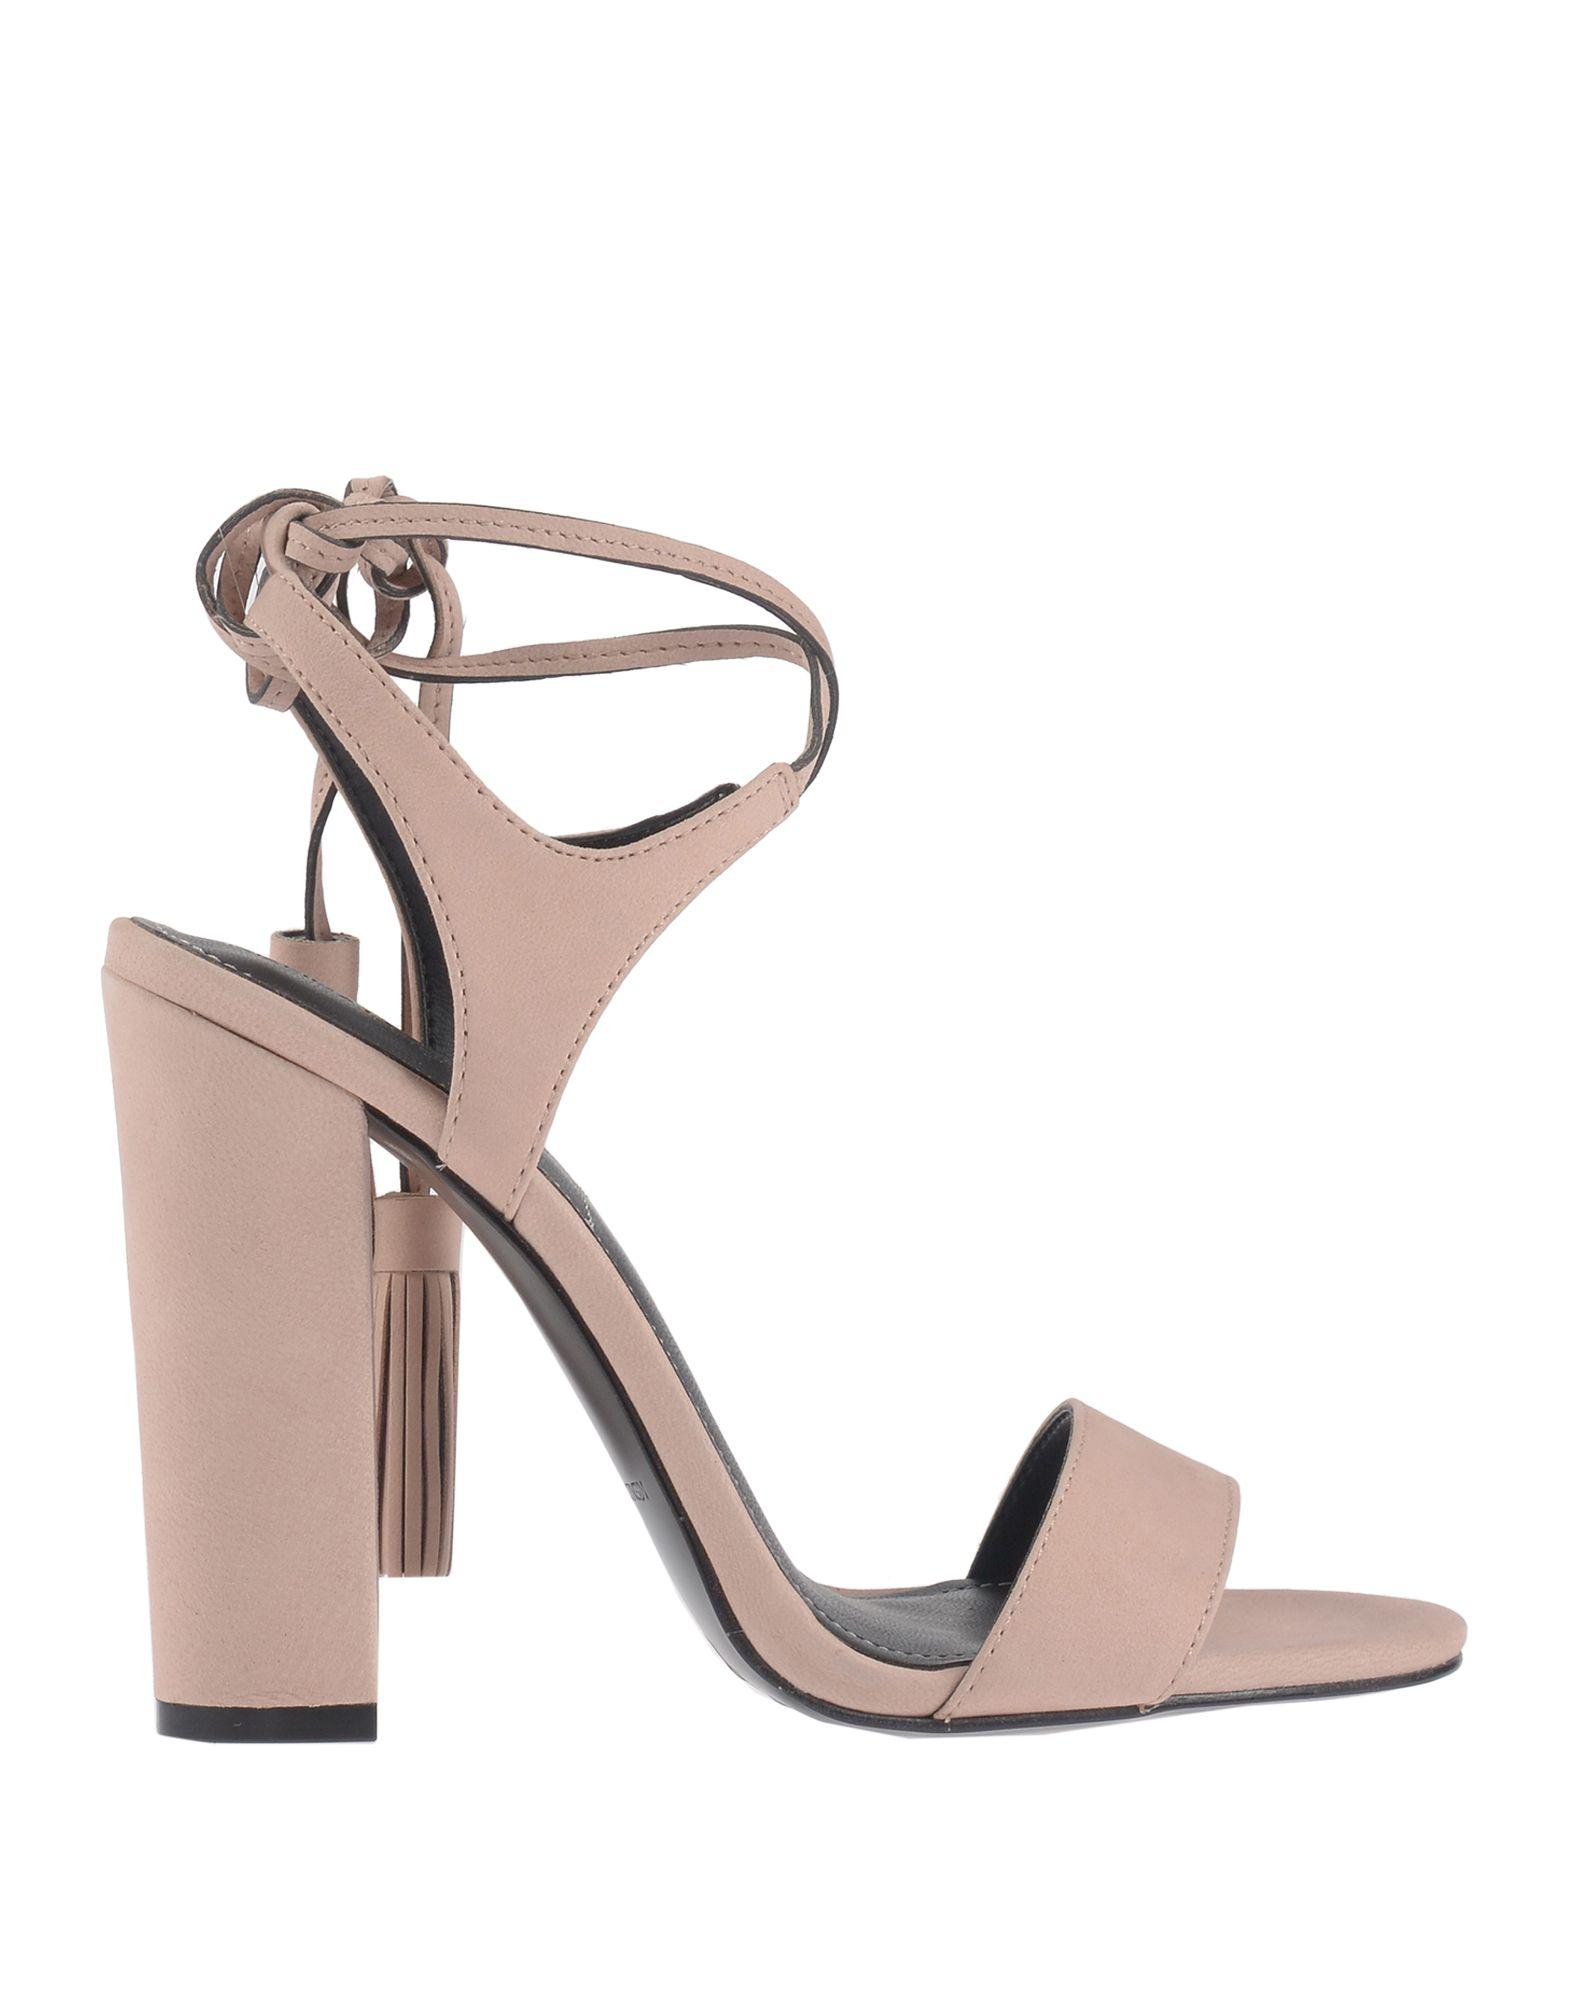 81026eaefd Lyst - Kendall + Kylie Sandals in Pink - Save 26.0%